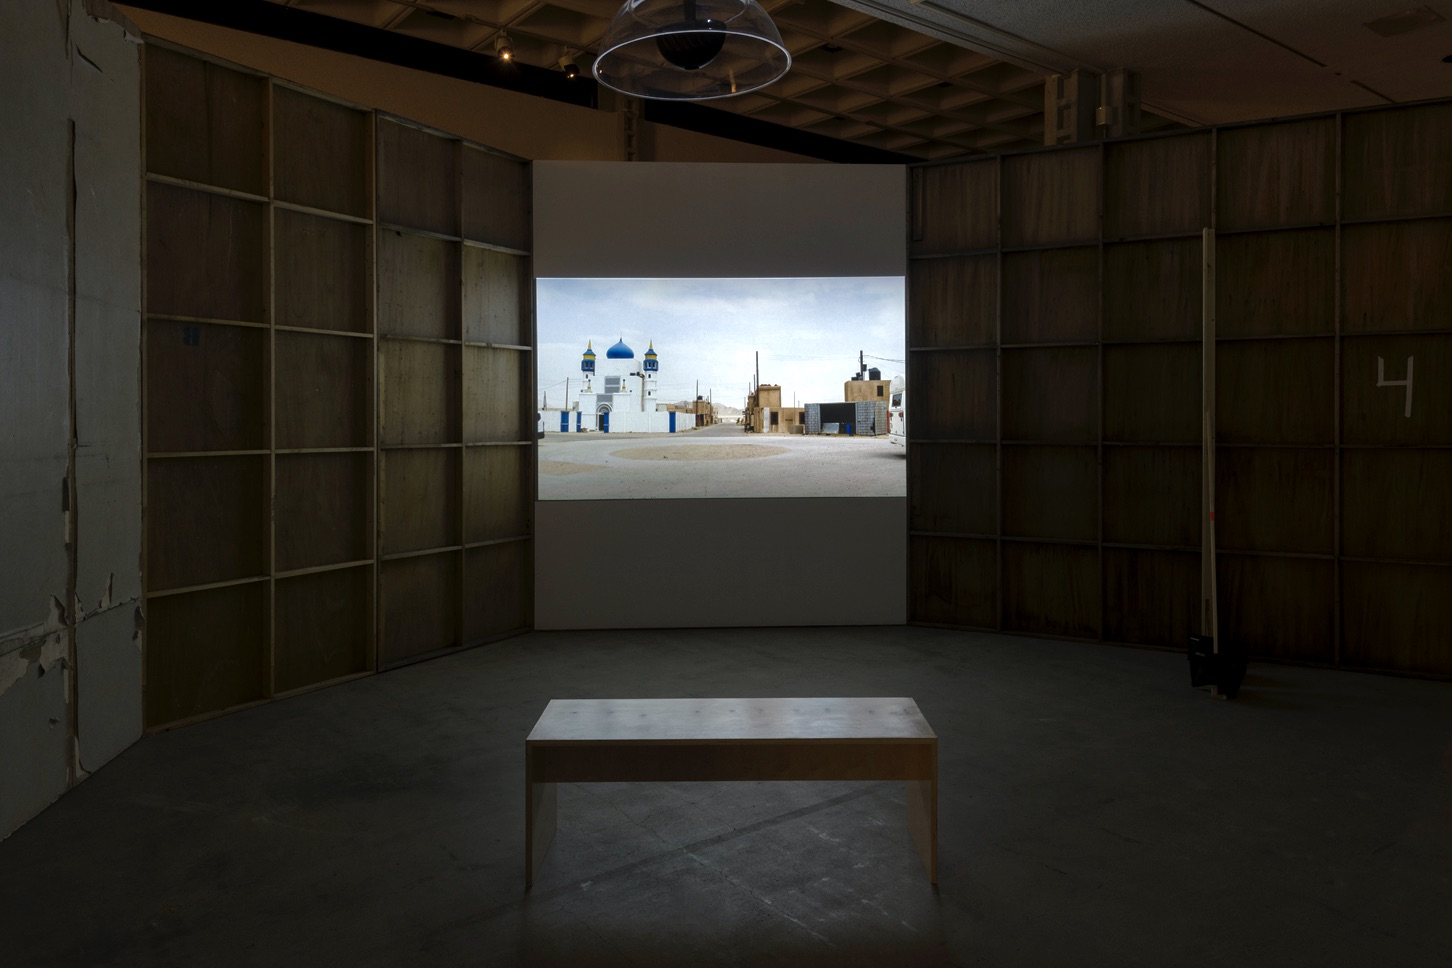 The artwork by the artist Abigail Raphael Collins includes tall wood walls with a projection screen displaying a video still. The video still features two different building structures with clouds and a blue sky in the background. The left structure is the Middle Eastern styled building and the right structure is the wooden military-like building.